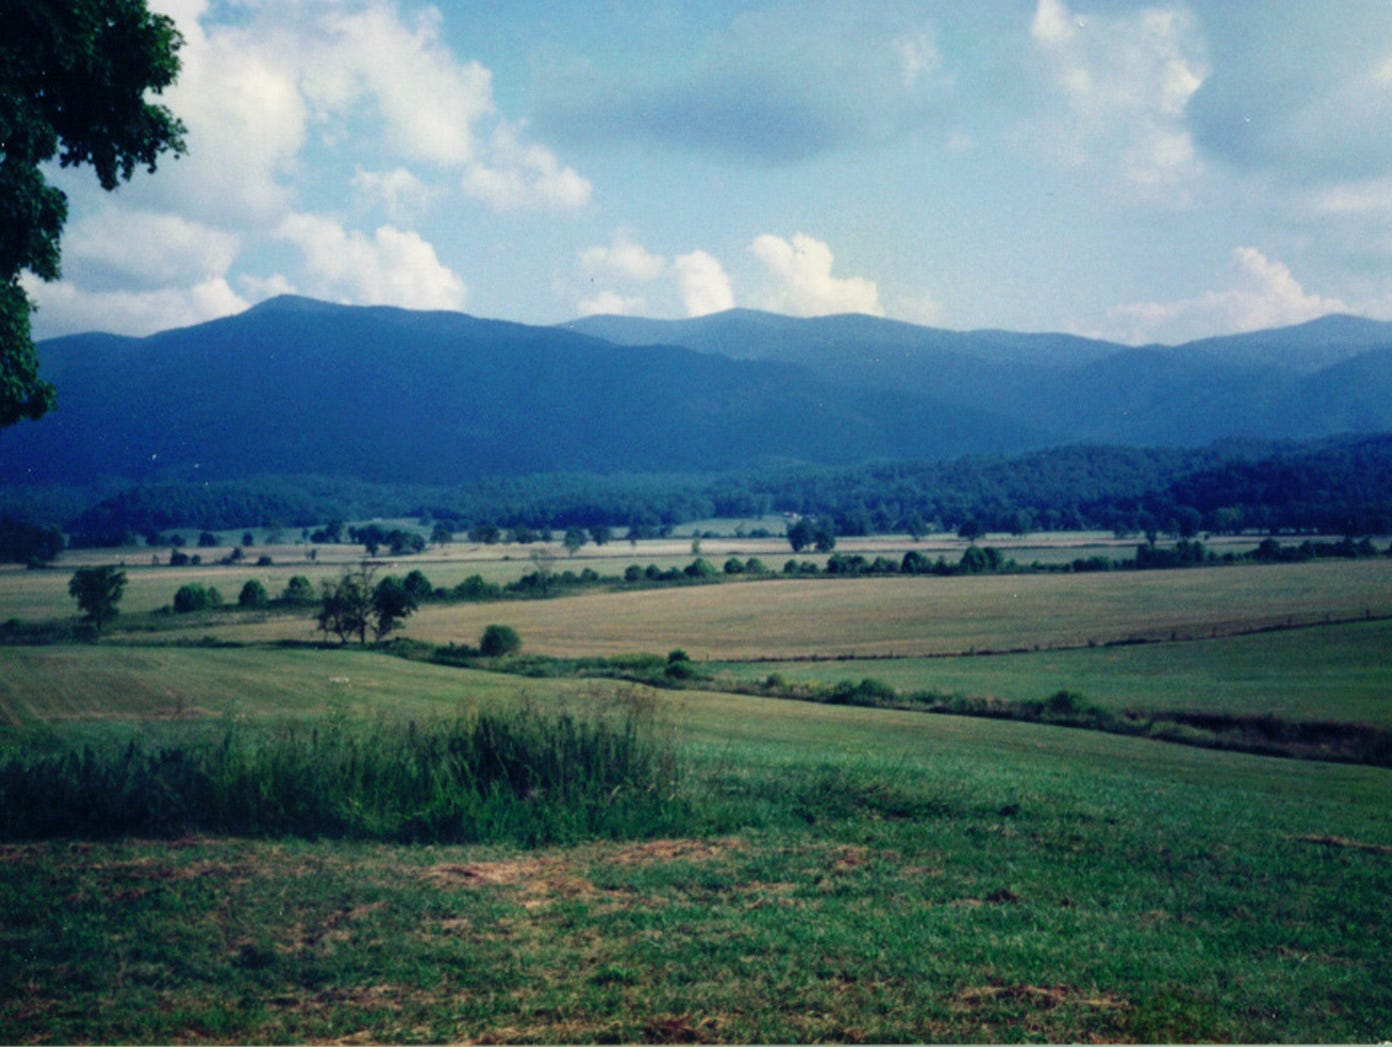 A beautiful view from Cades Cove in the Great Smokey Mountains National Park.